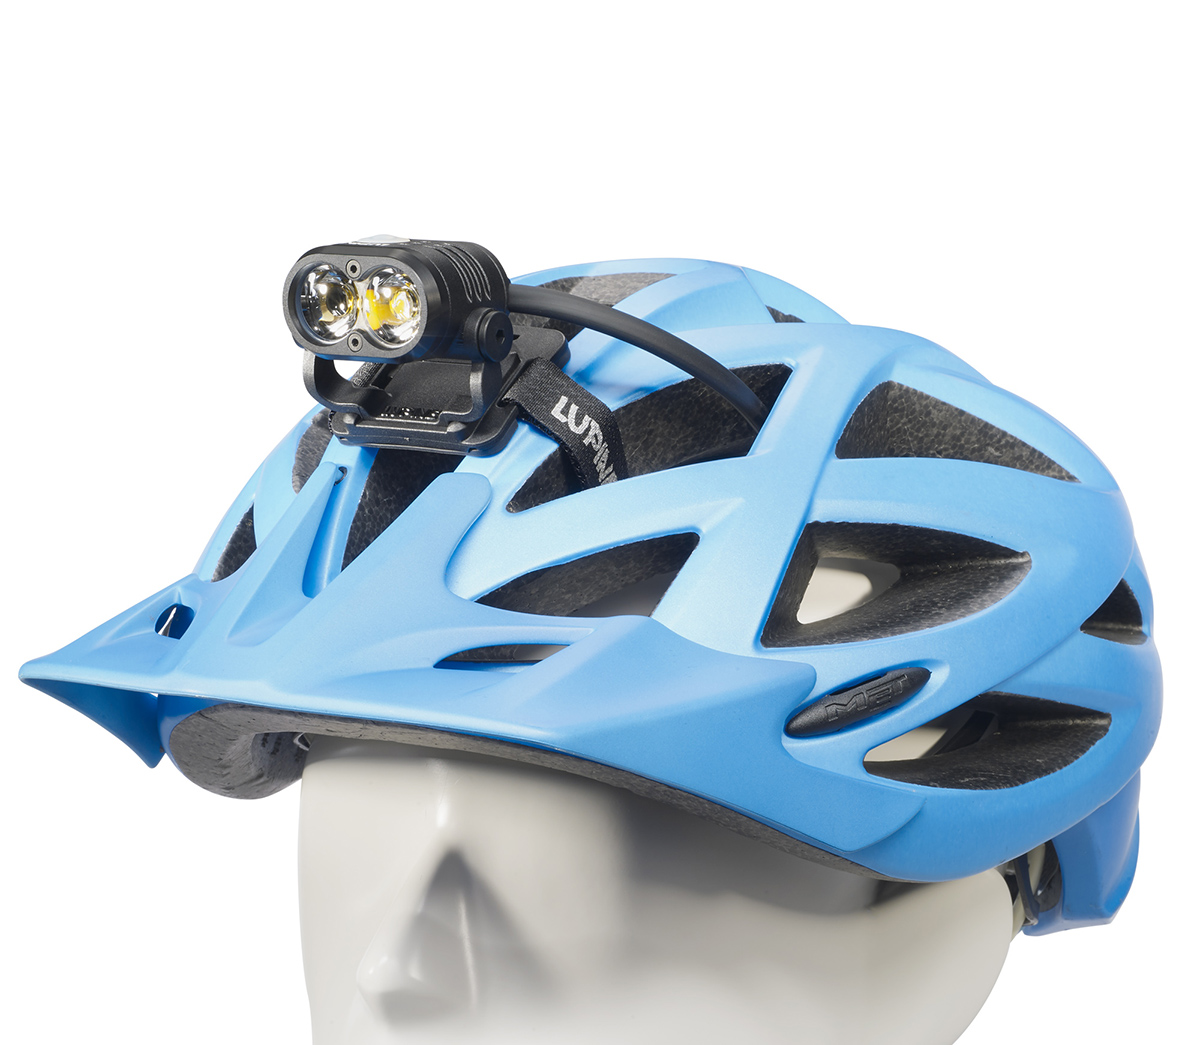 2018 Piko 4 Smartcore light on helmet